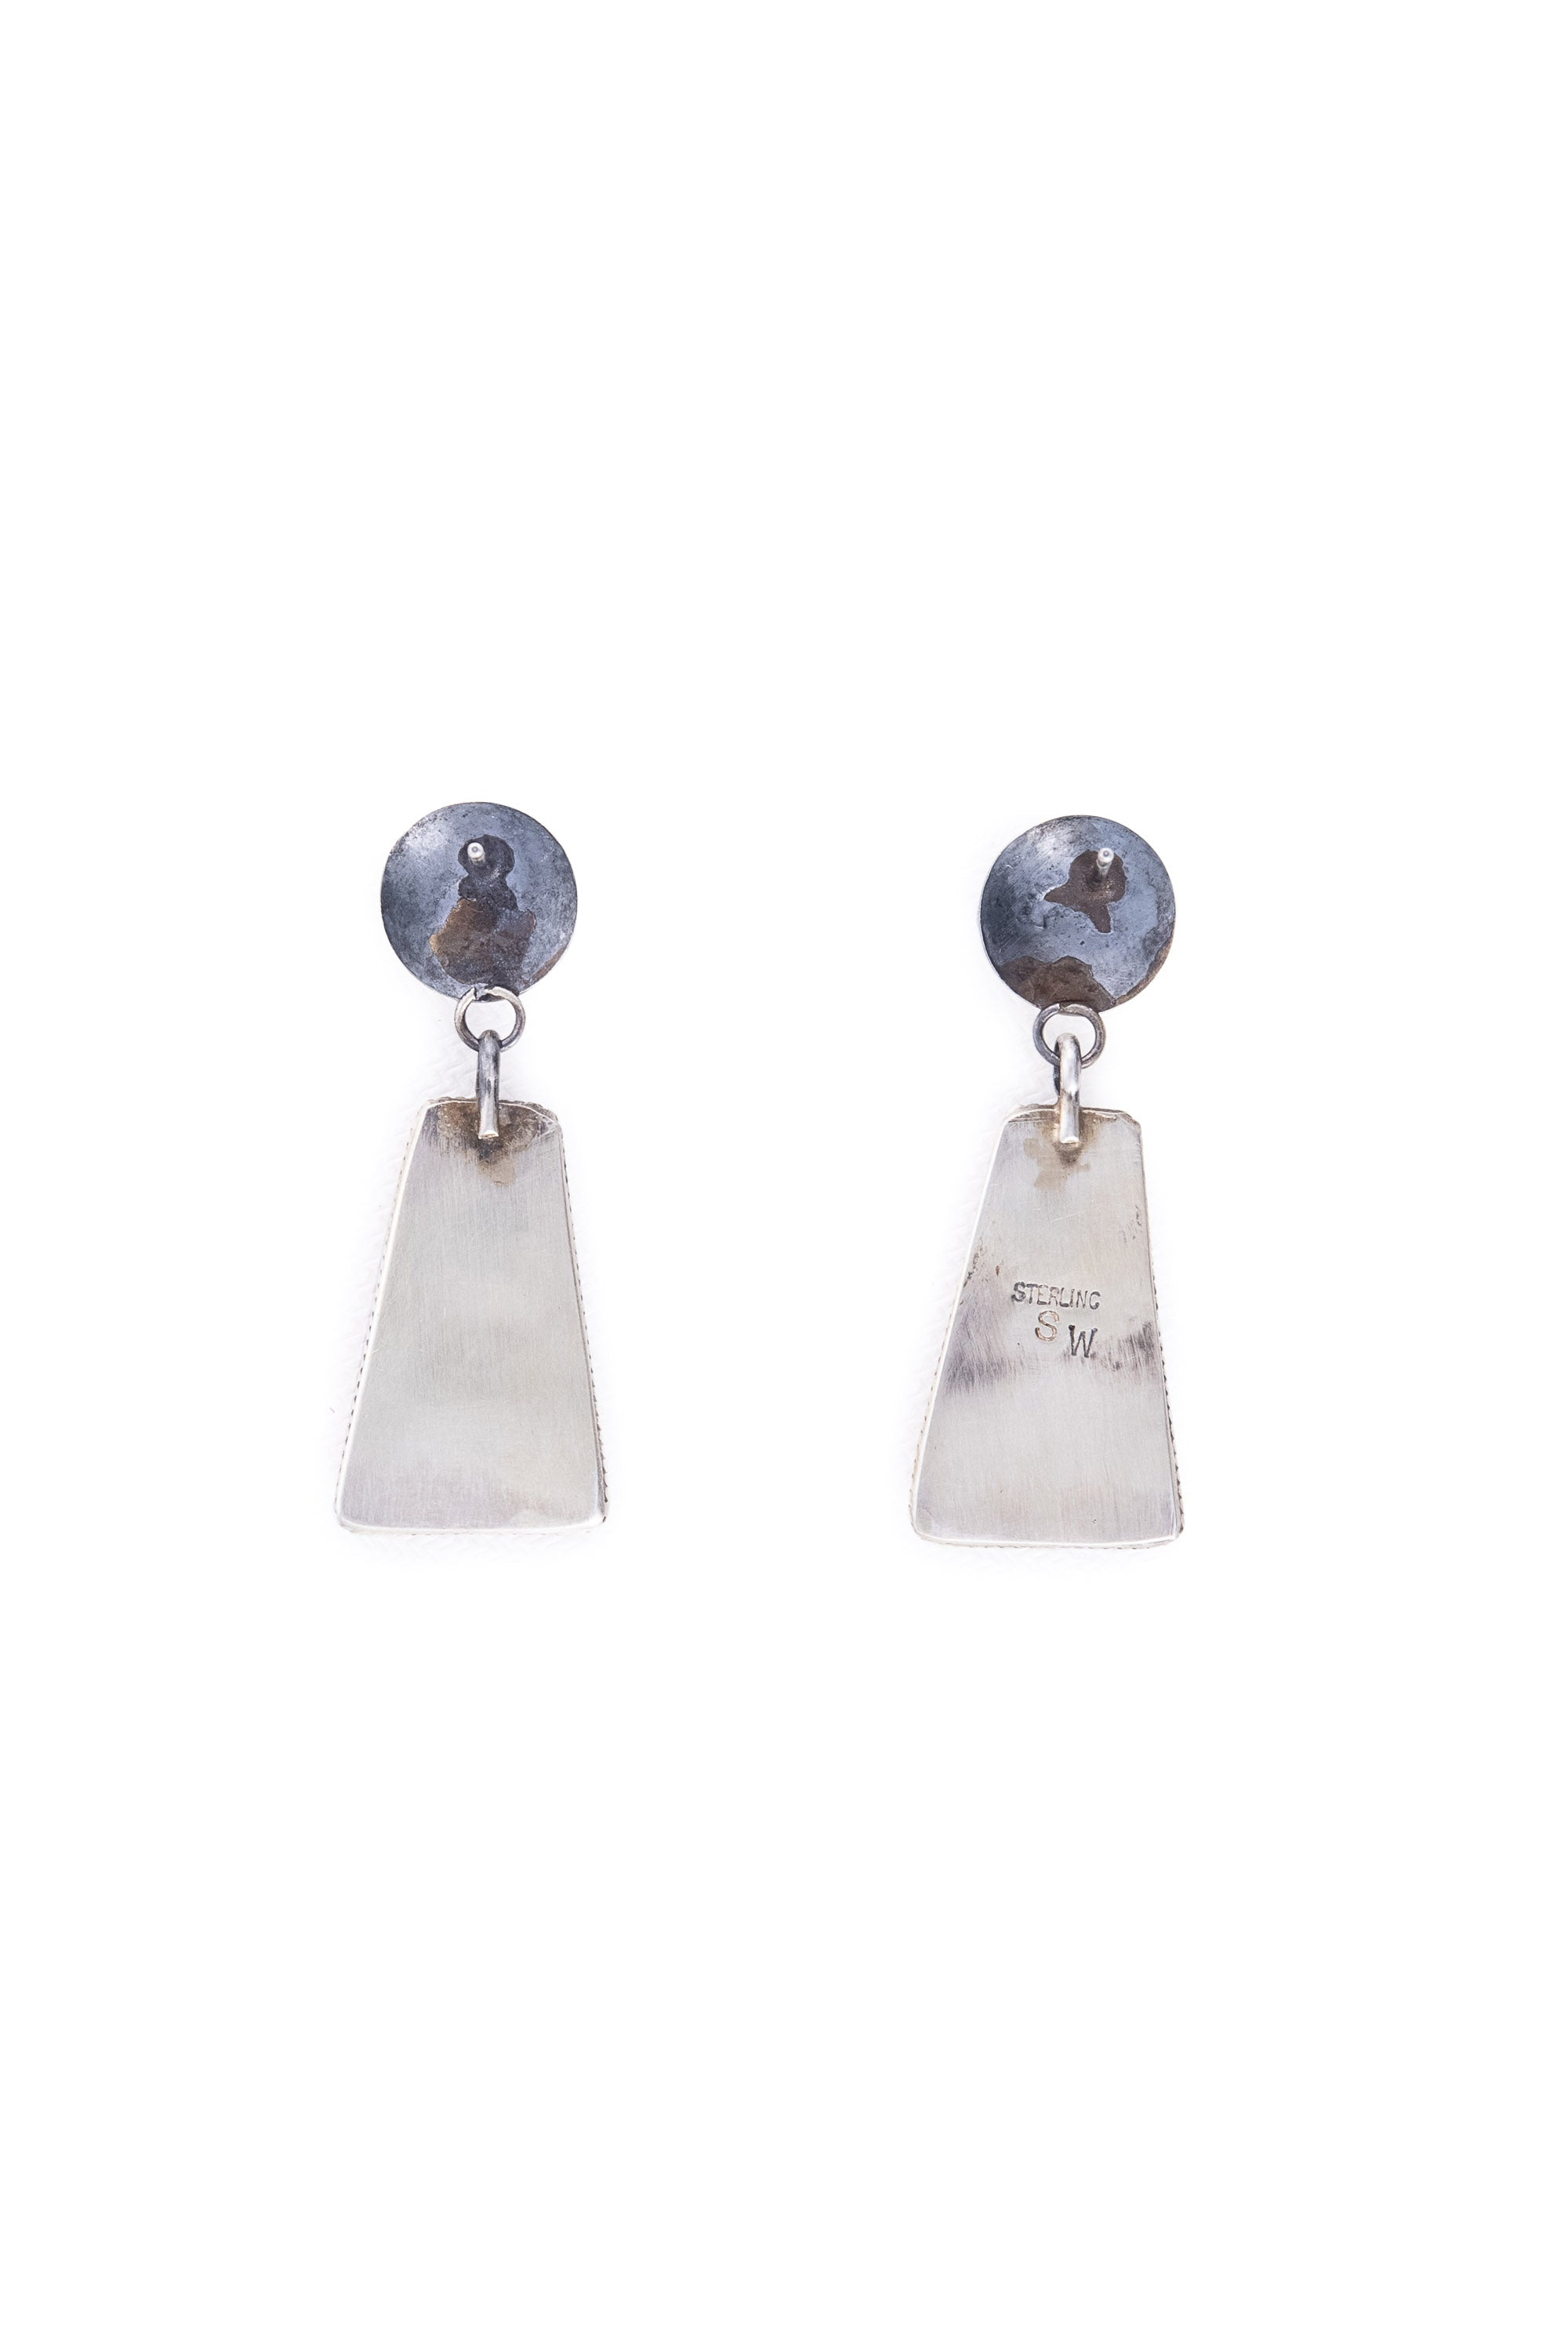 Earrings, Drop, Orange Spiny Oyster, Hallmark, 676